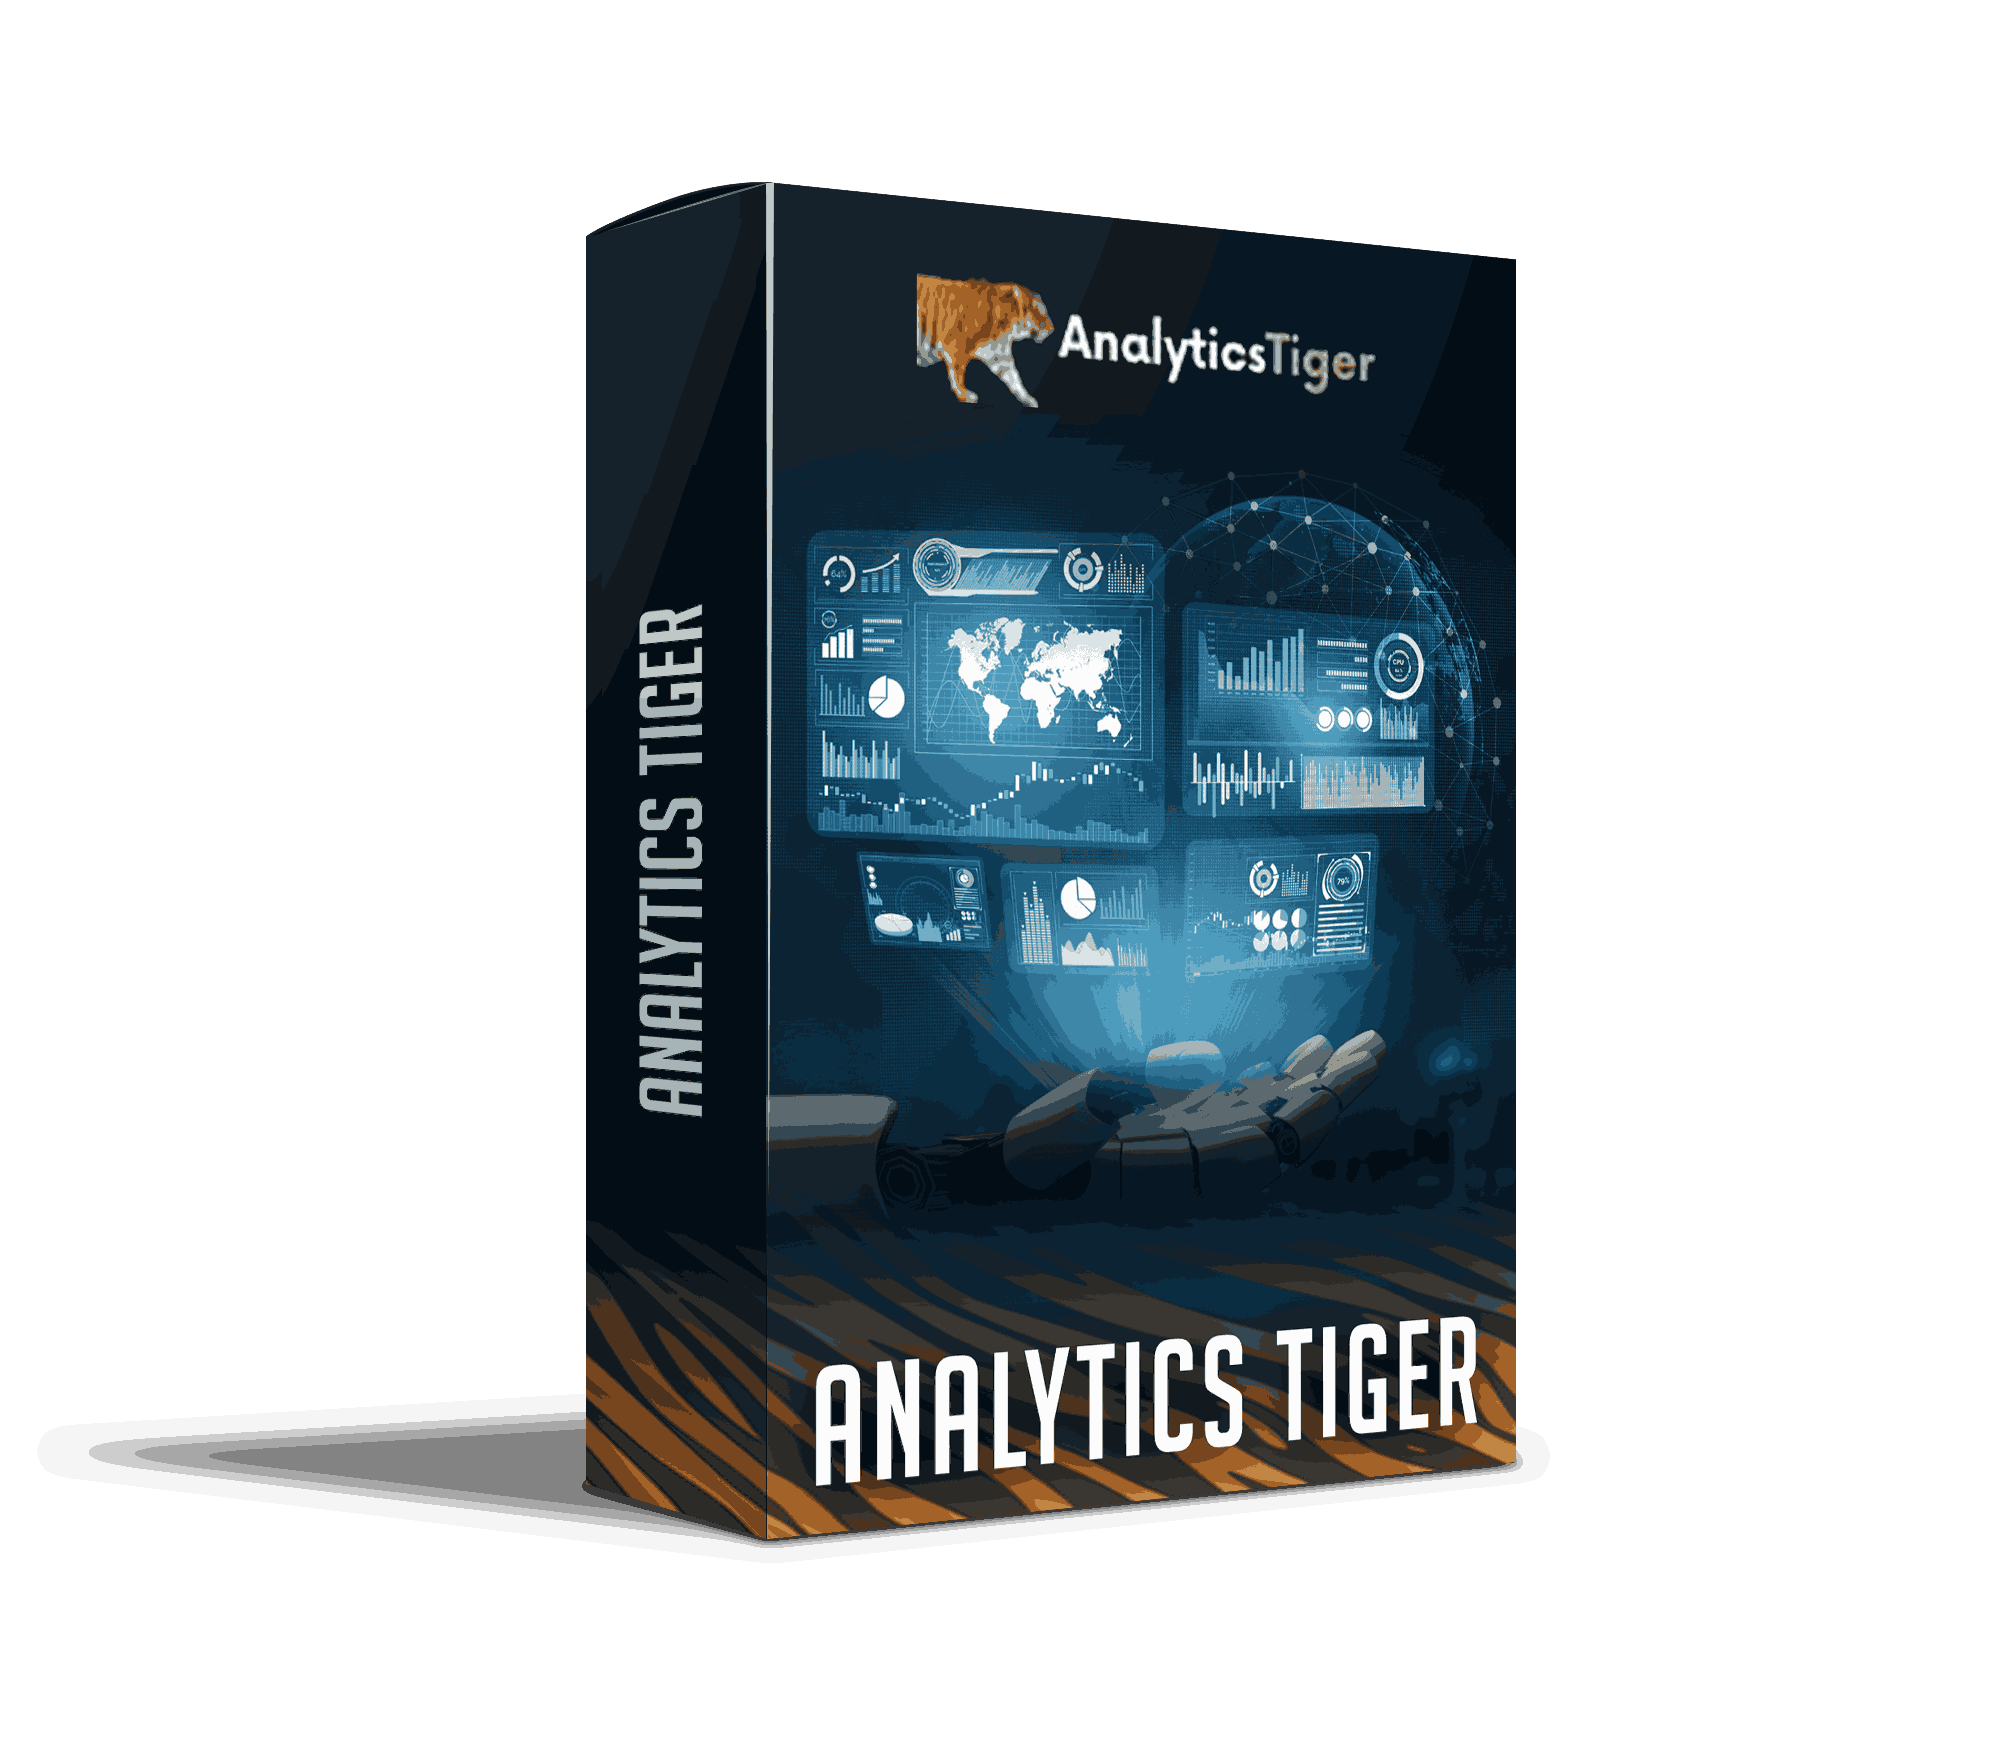 AnalyticsTiger review